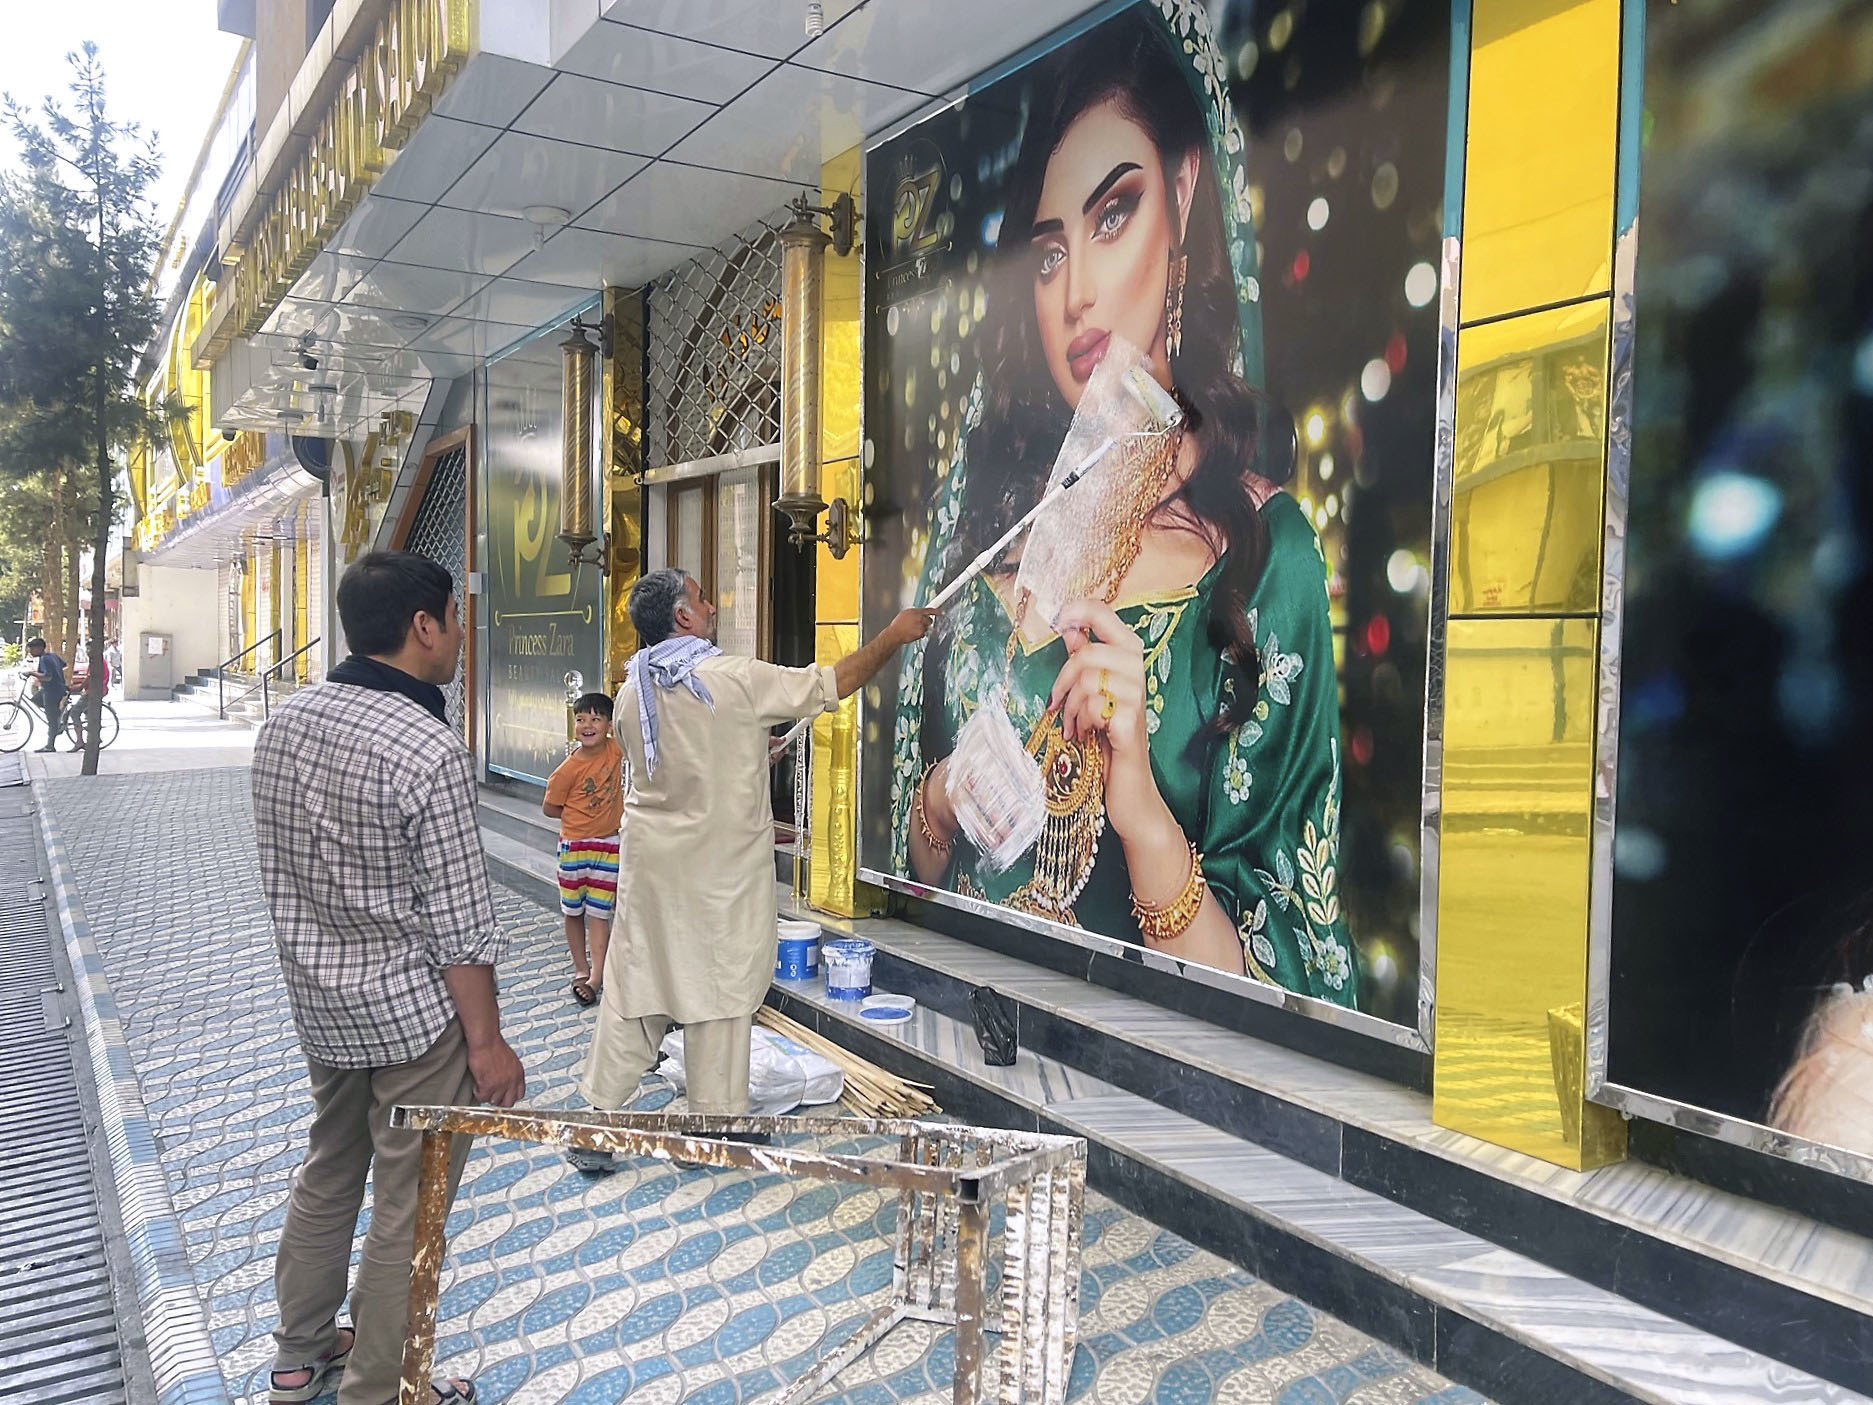 A worker at a beauty salon paints over a large photo of a woman on the wall in Kabul following news that the Taliban swept into the Afghan capital